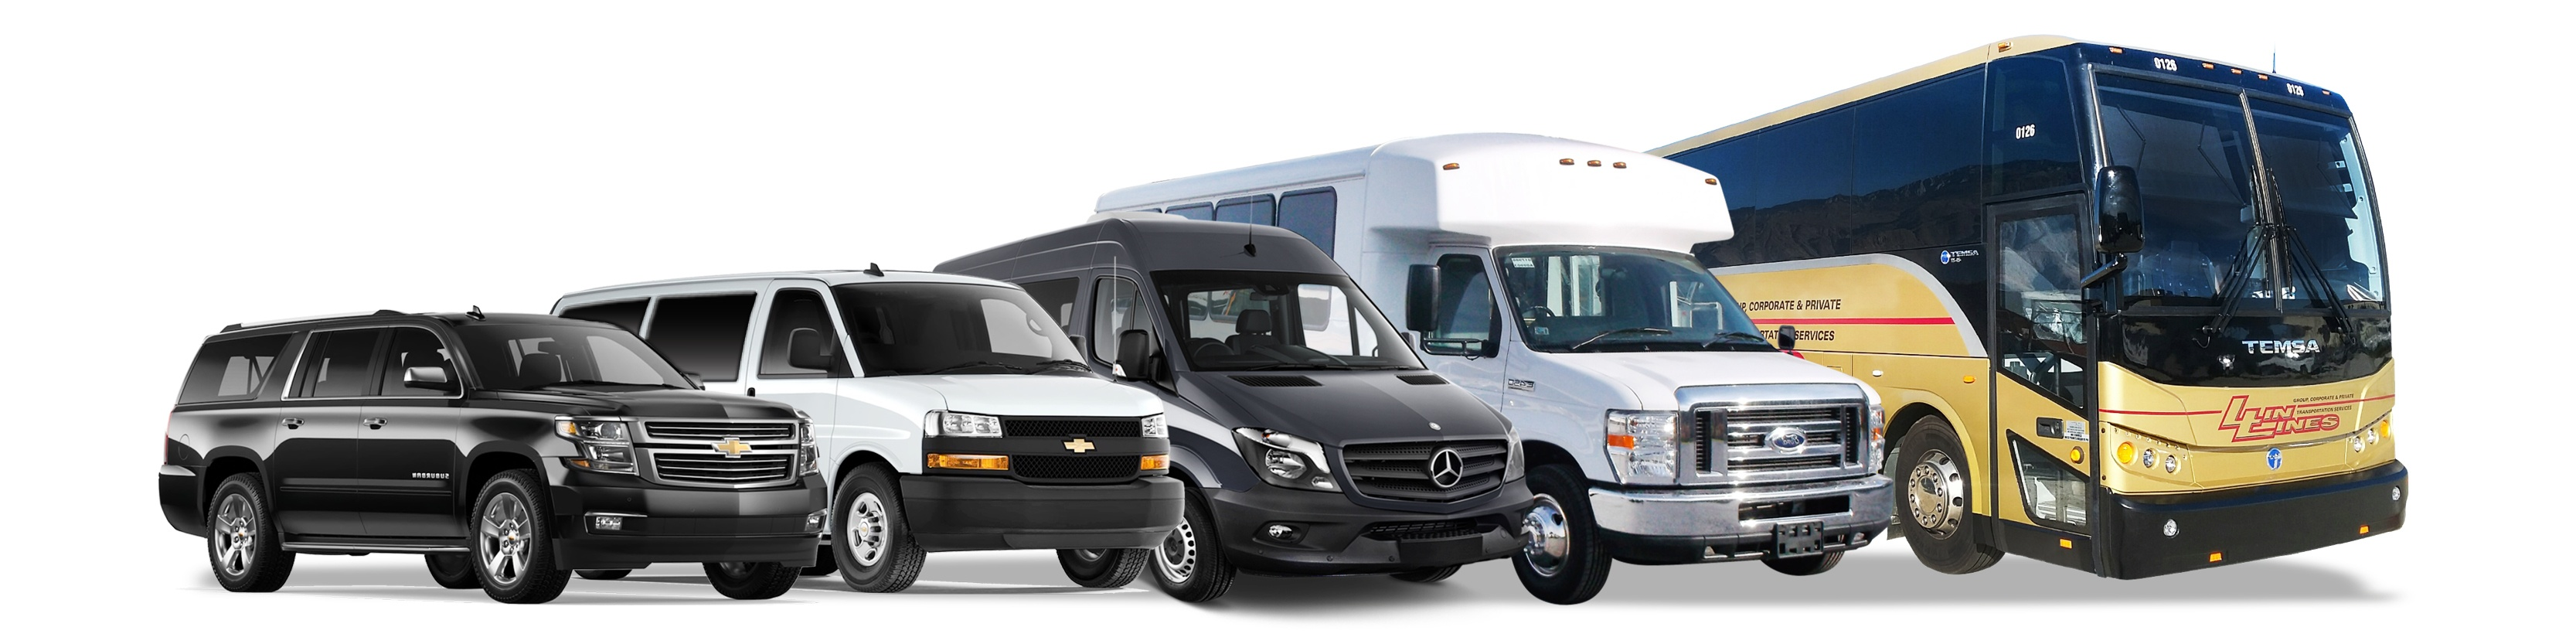 bus charter rental palm springs